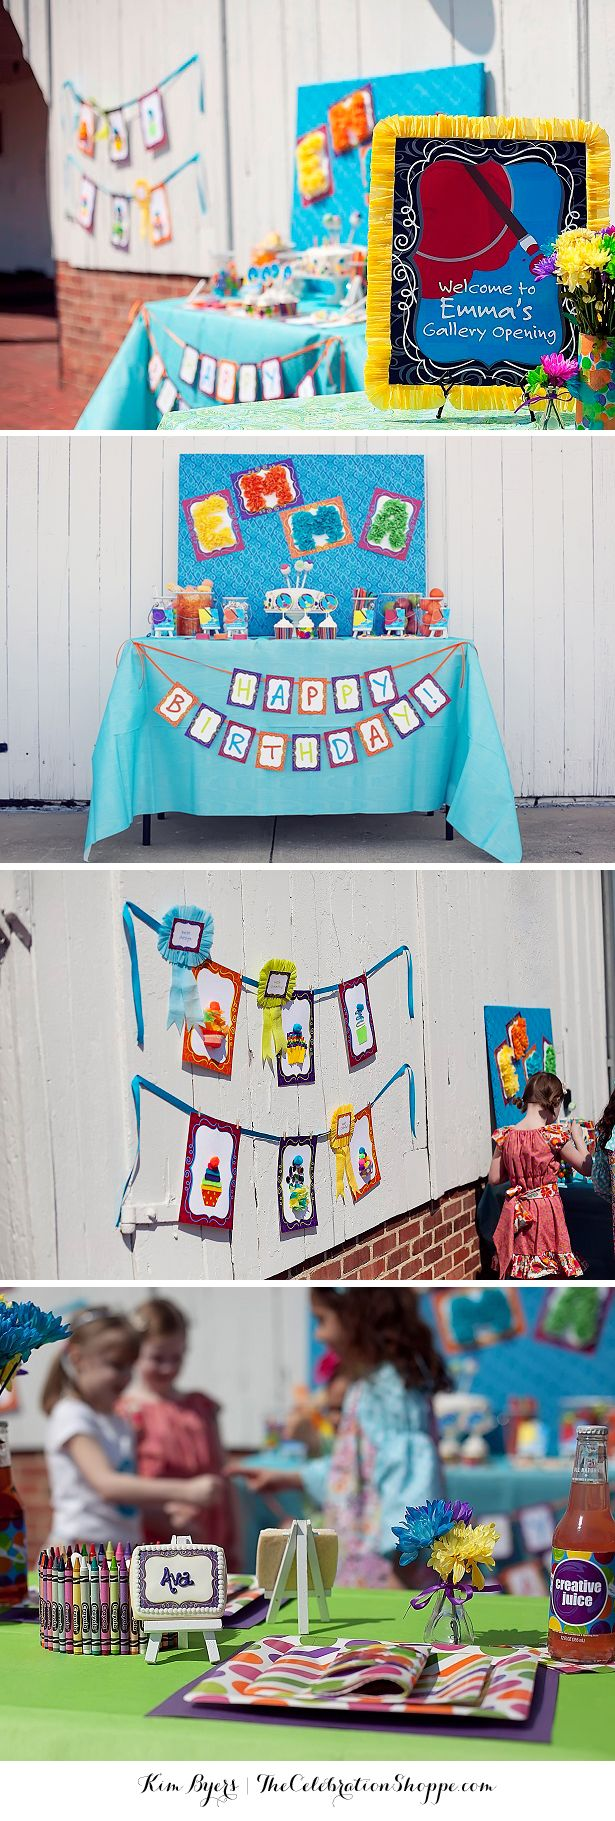 Fun and creative art birthday party ideas for your little picasso | @kimbyers TheCelebrationShoppe.com